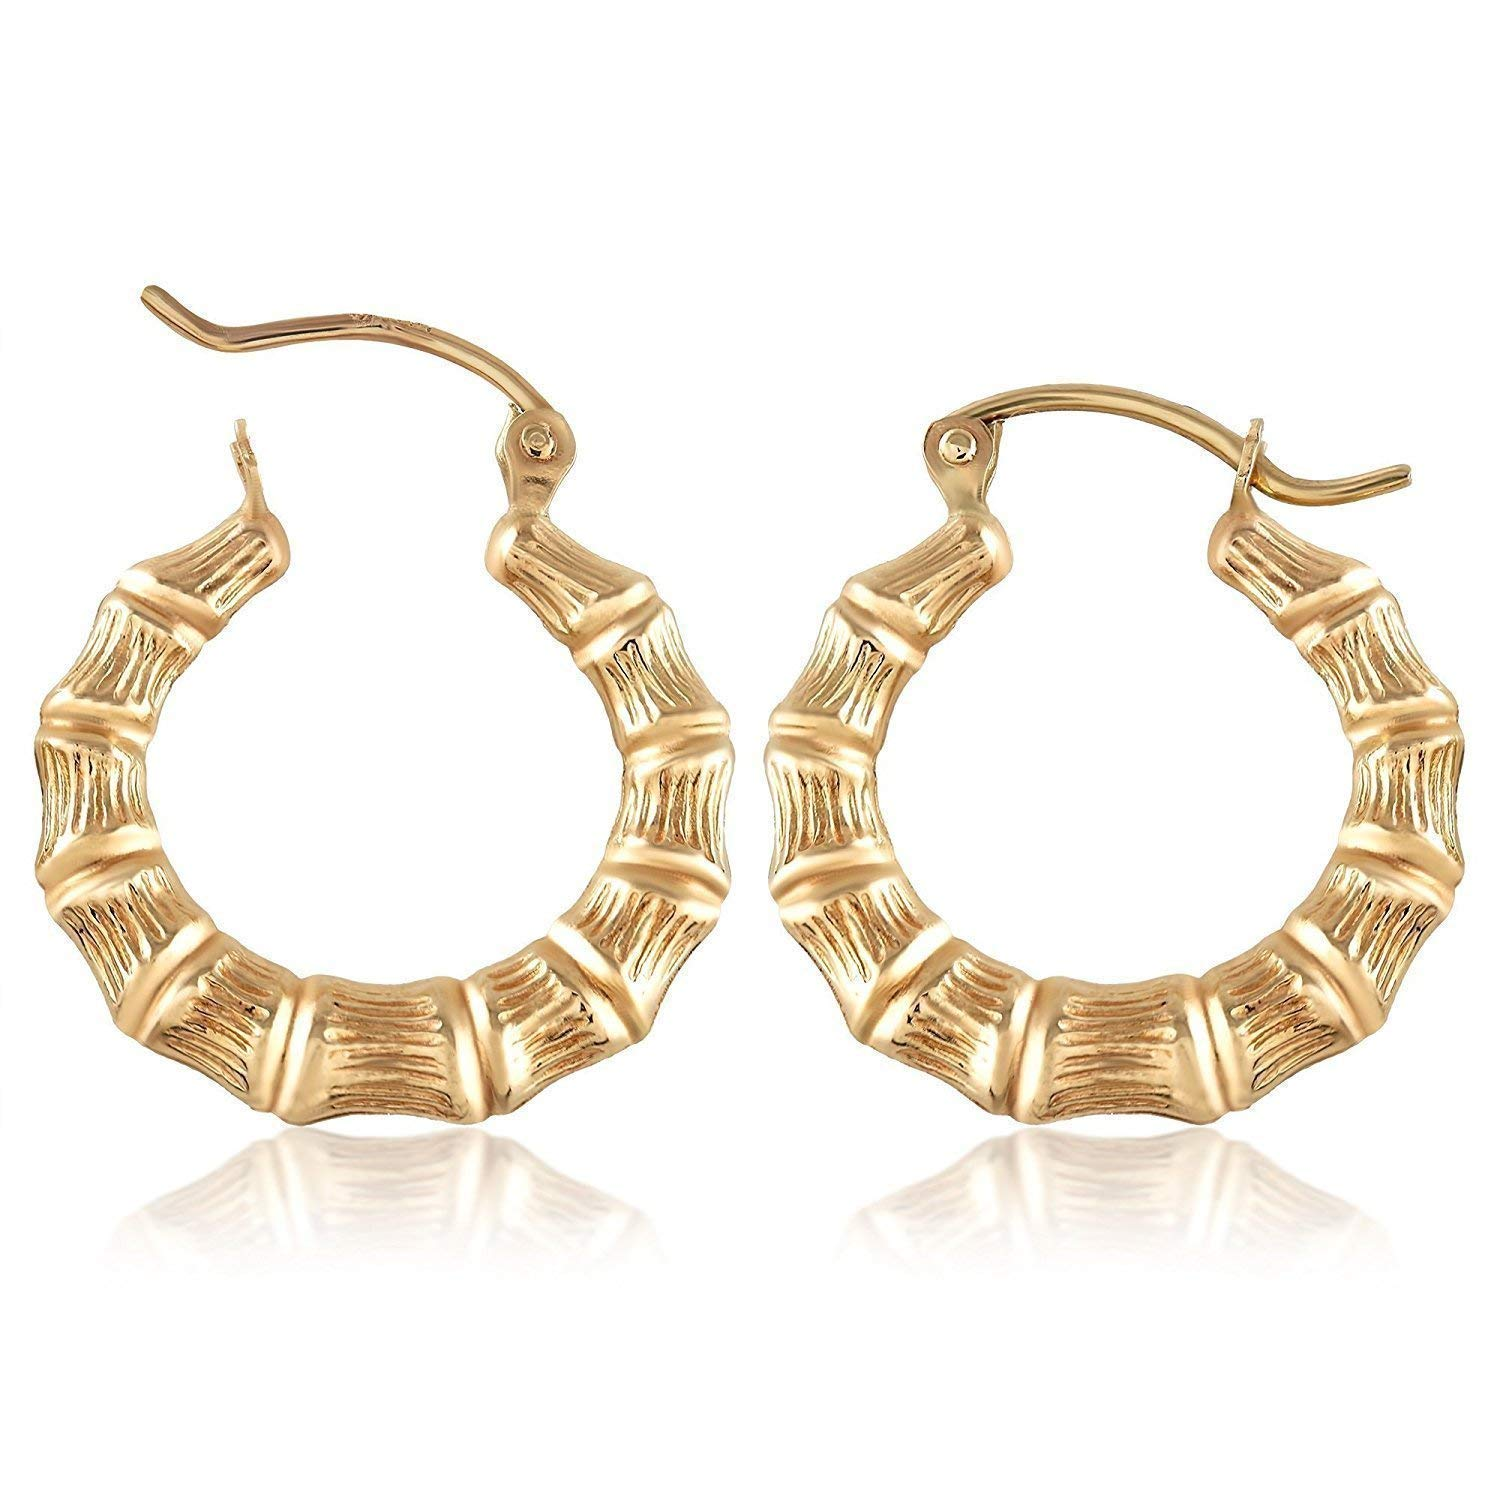 882ac02ac Get Quotations · TousiAttar Bamboo Hoop Earrings - 14k Gold Earring for  Women and Girls - Unique Jewelry for